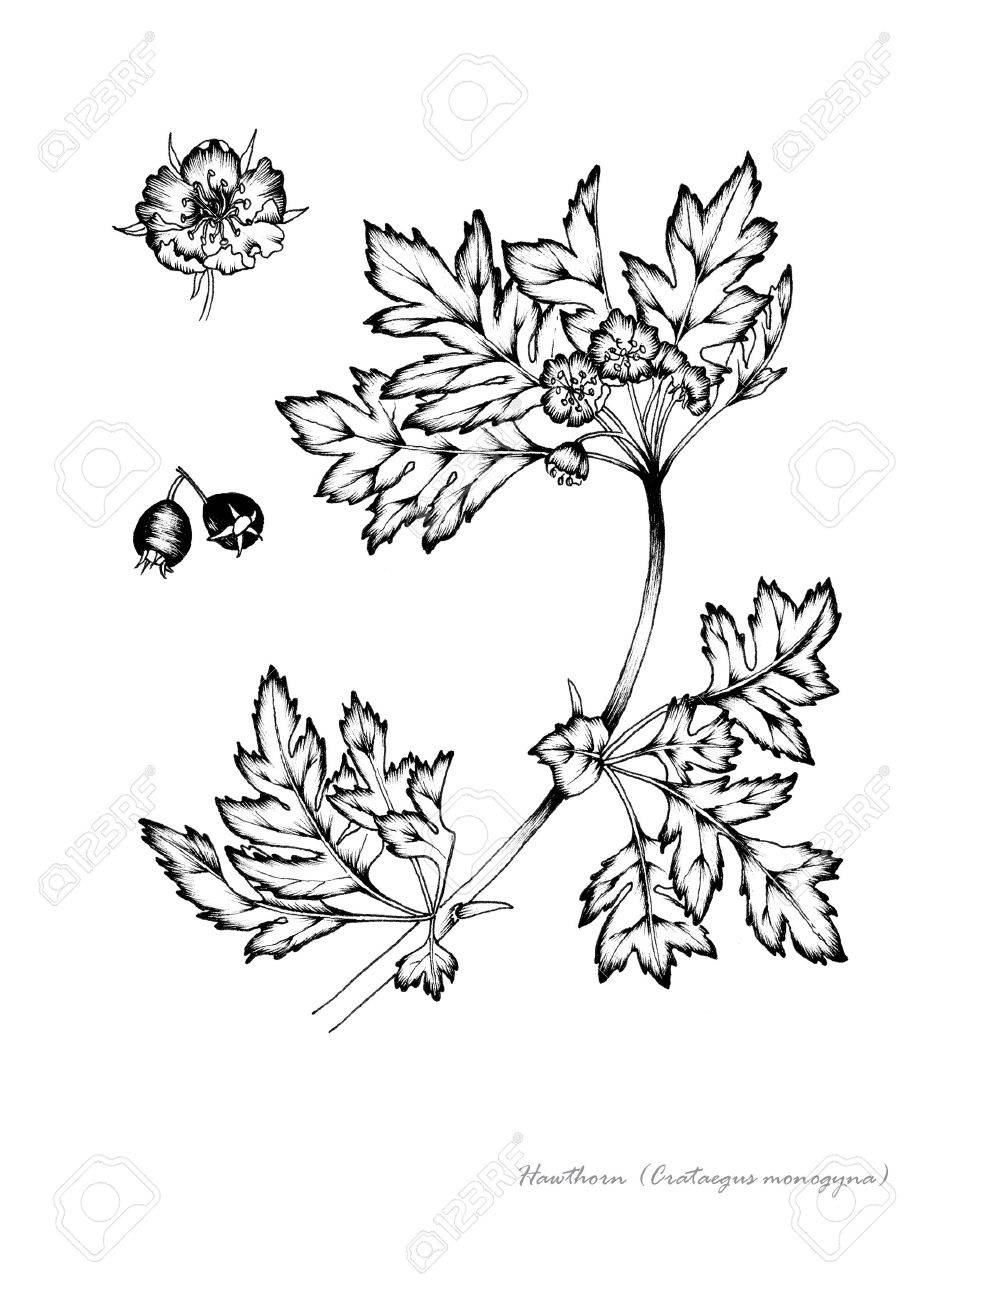 1002x1300 Hawthorn With Detail Of Fruit Flower Stock Photo, Picture